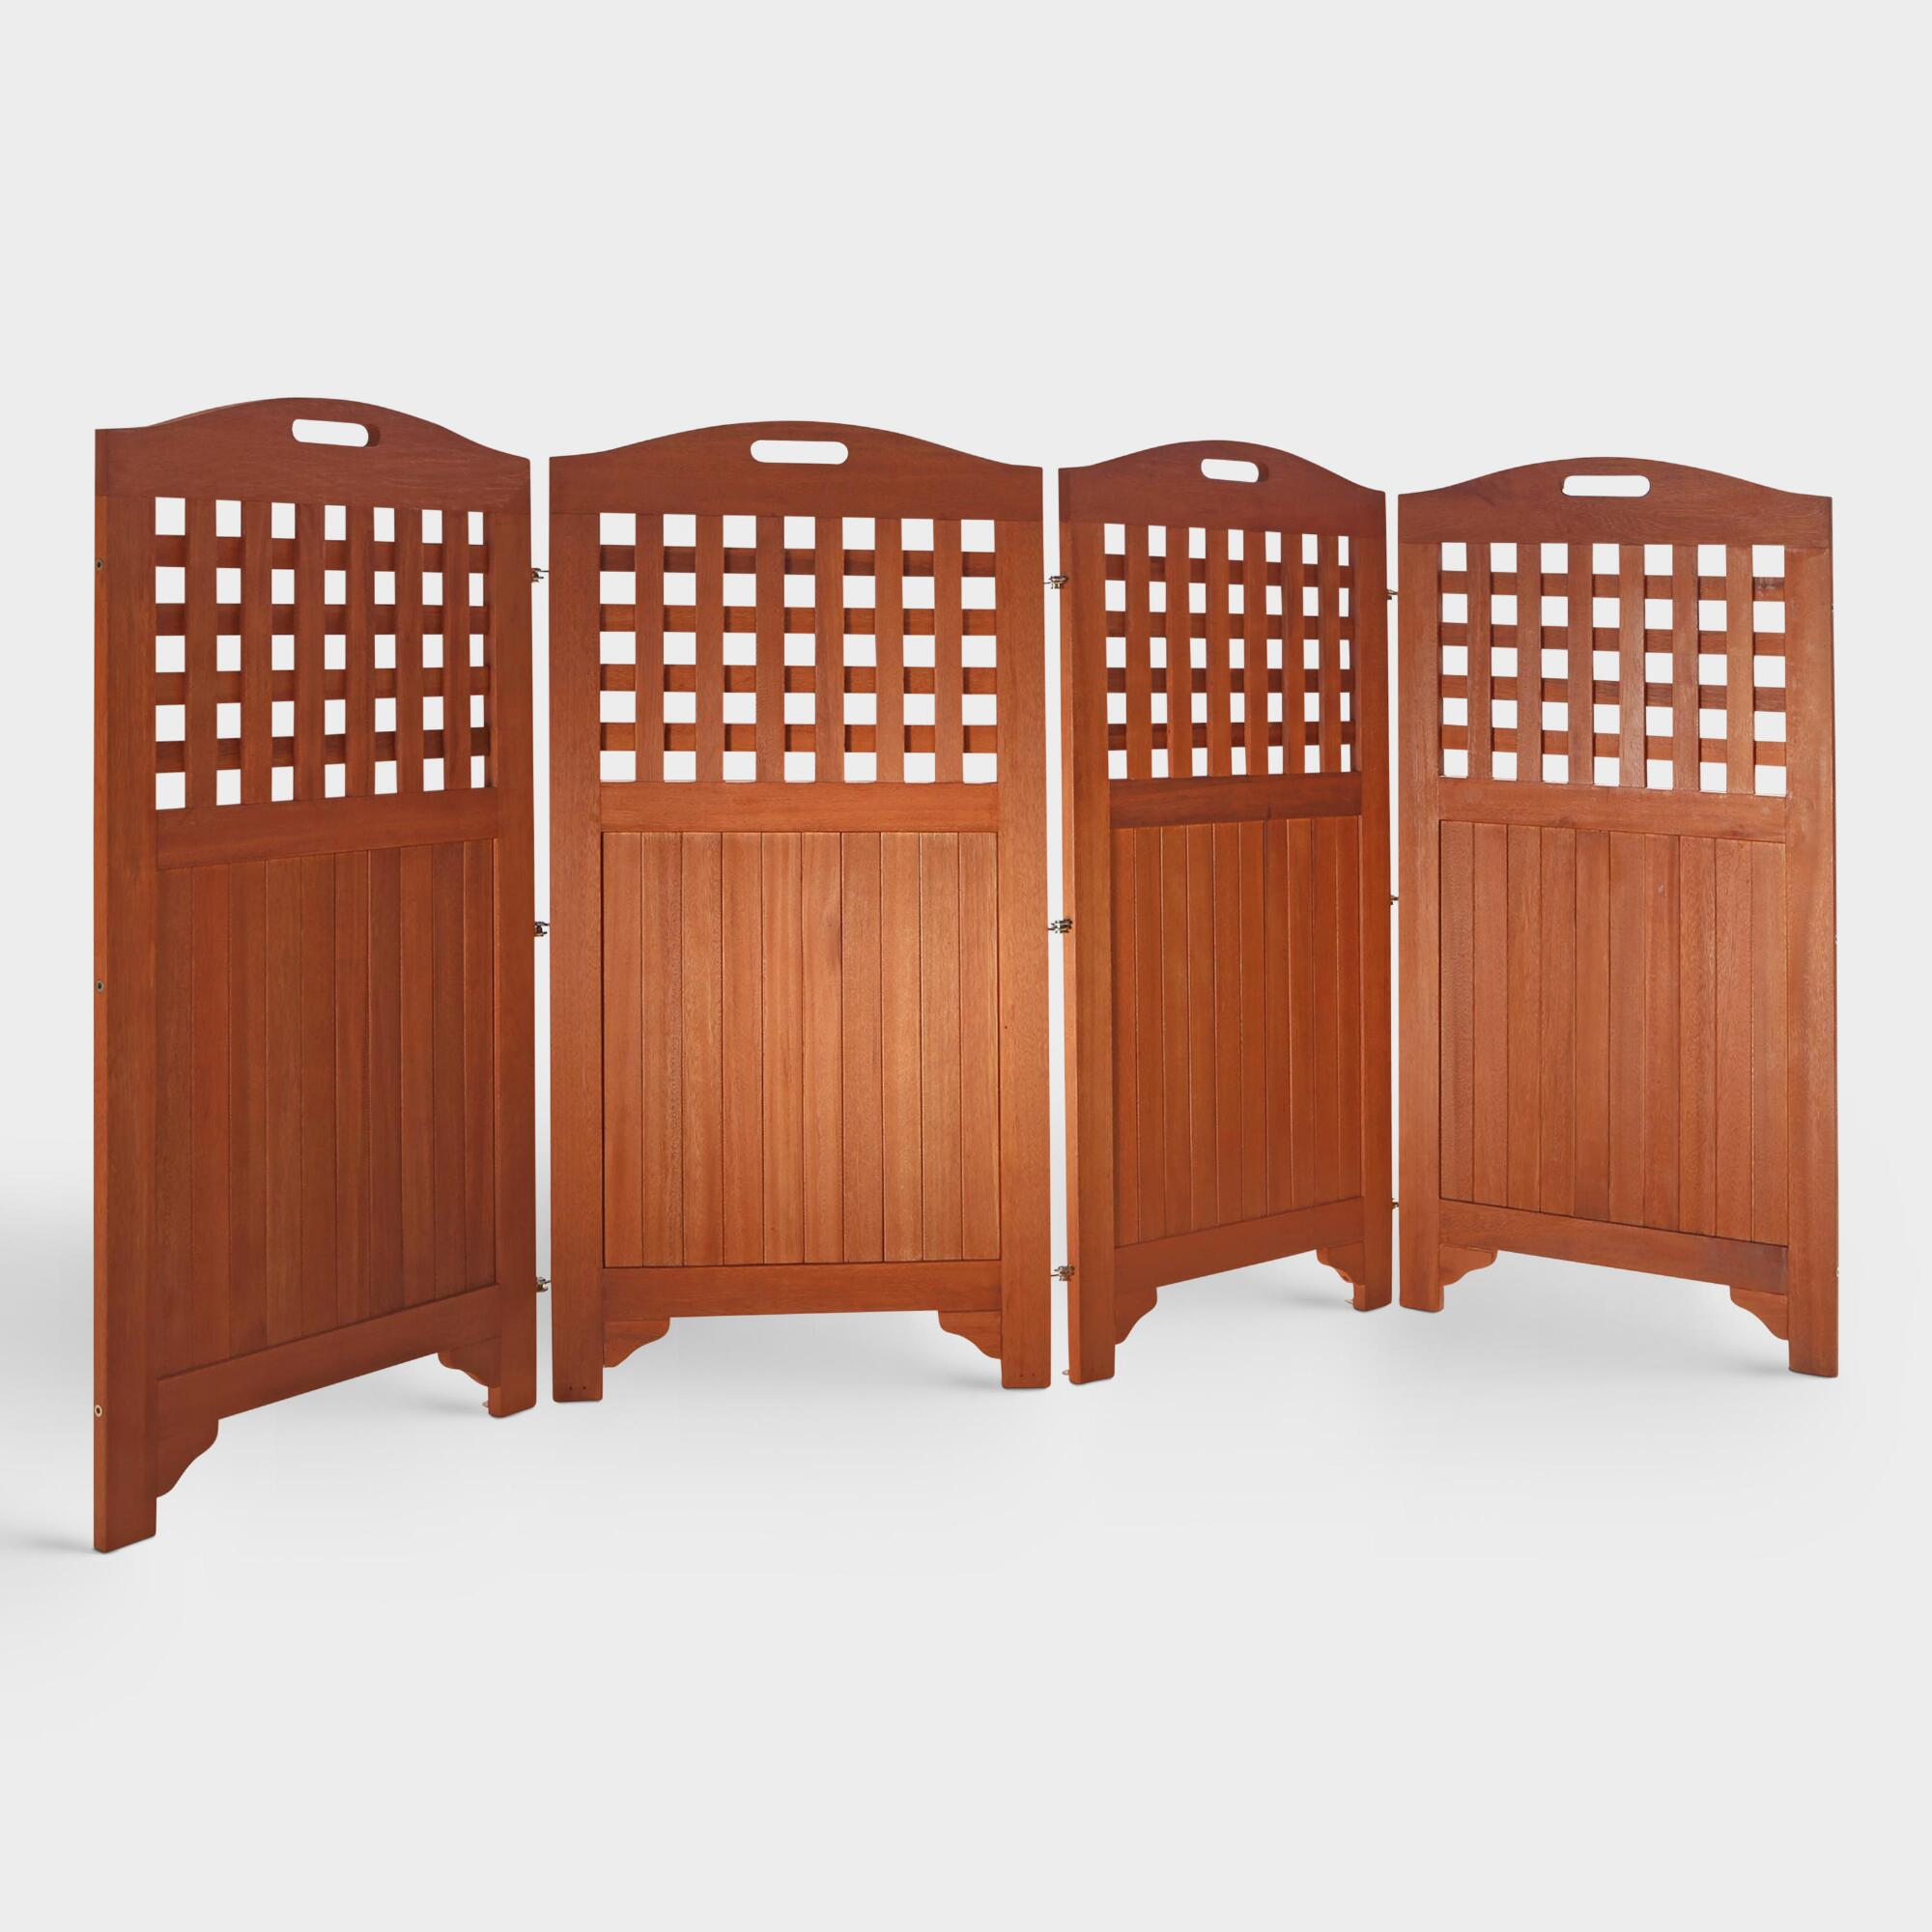 Acacia Wood Outdoor Patio 4-Panel Screen: Brown by World Market